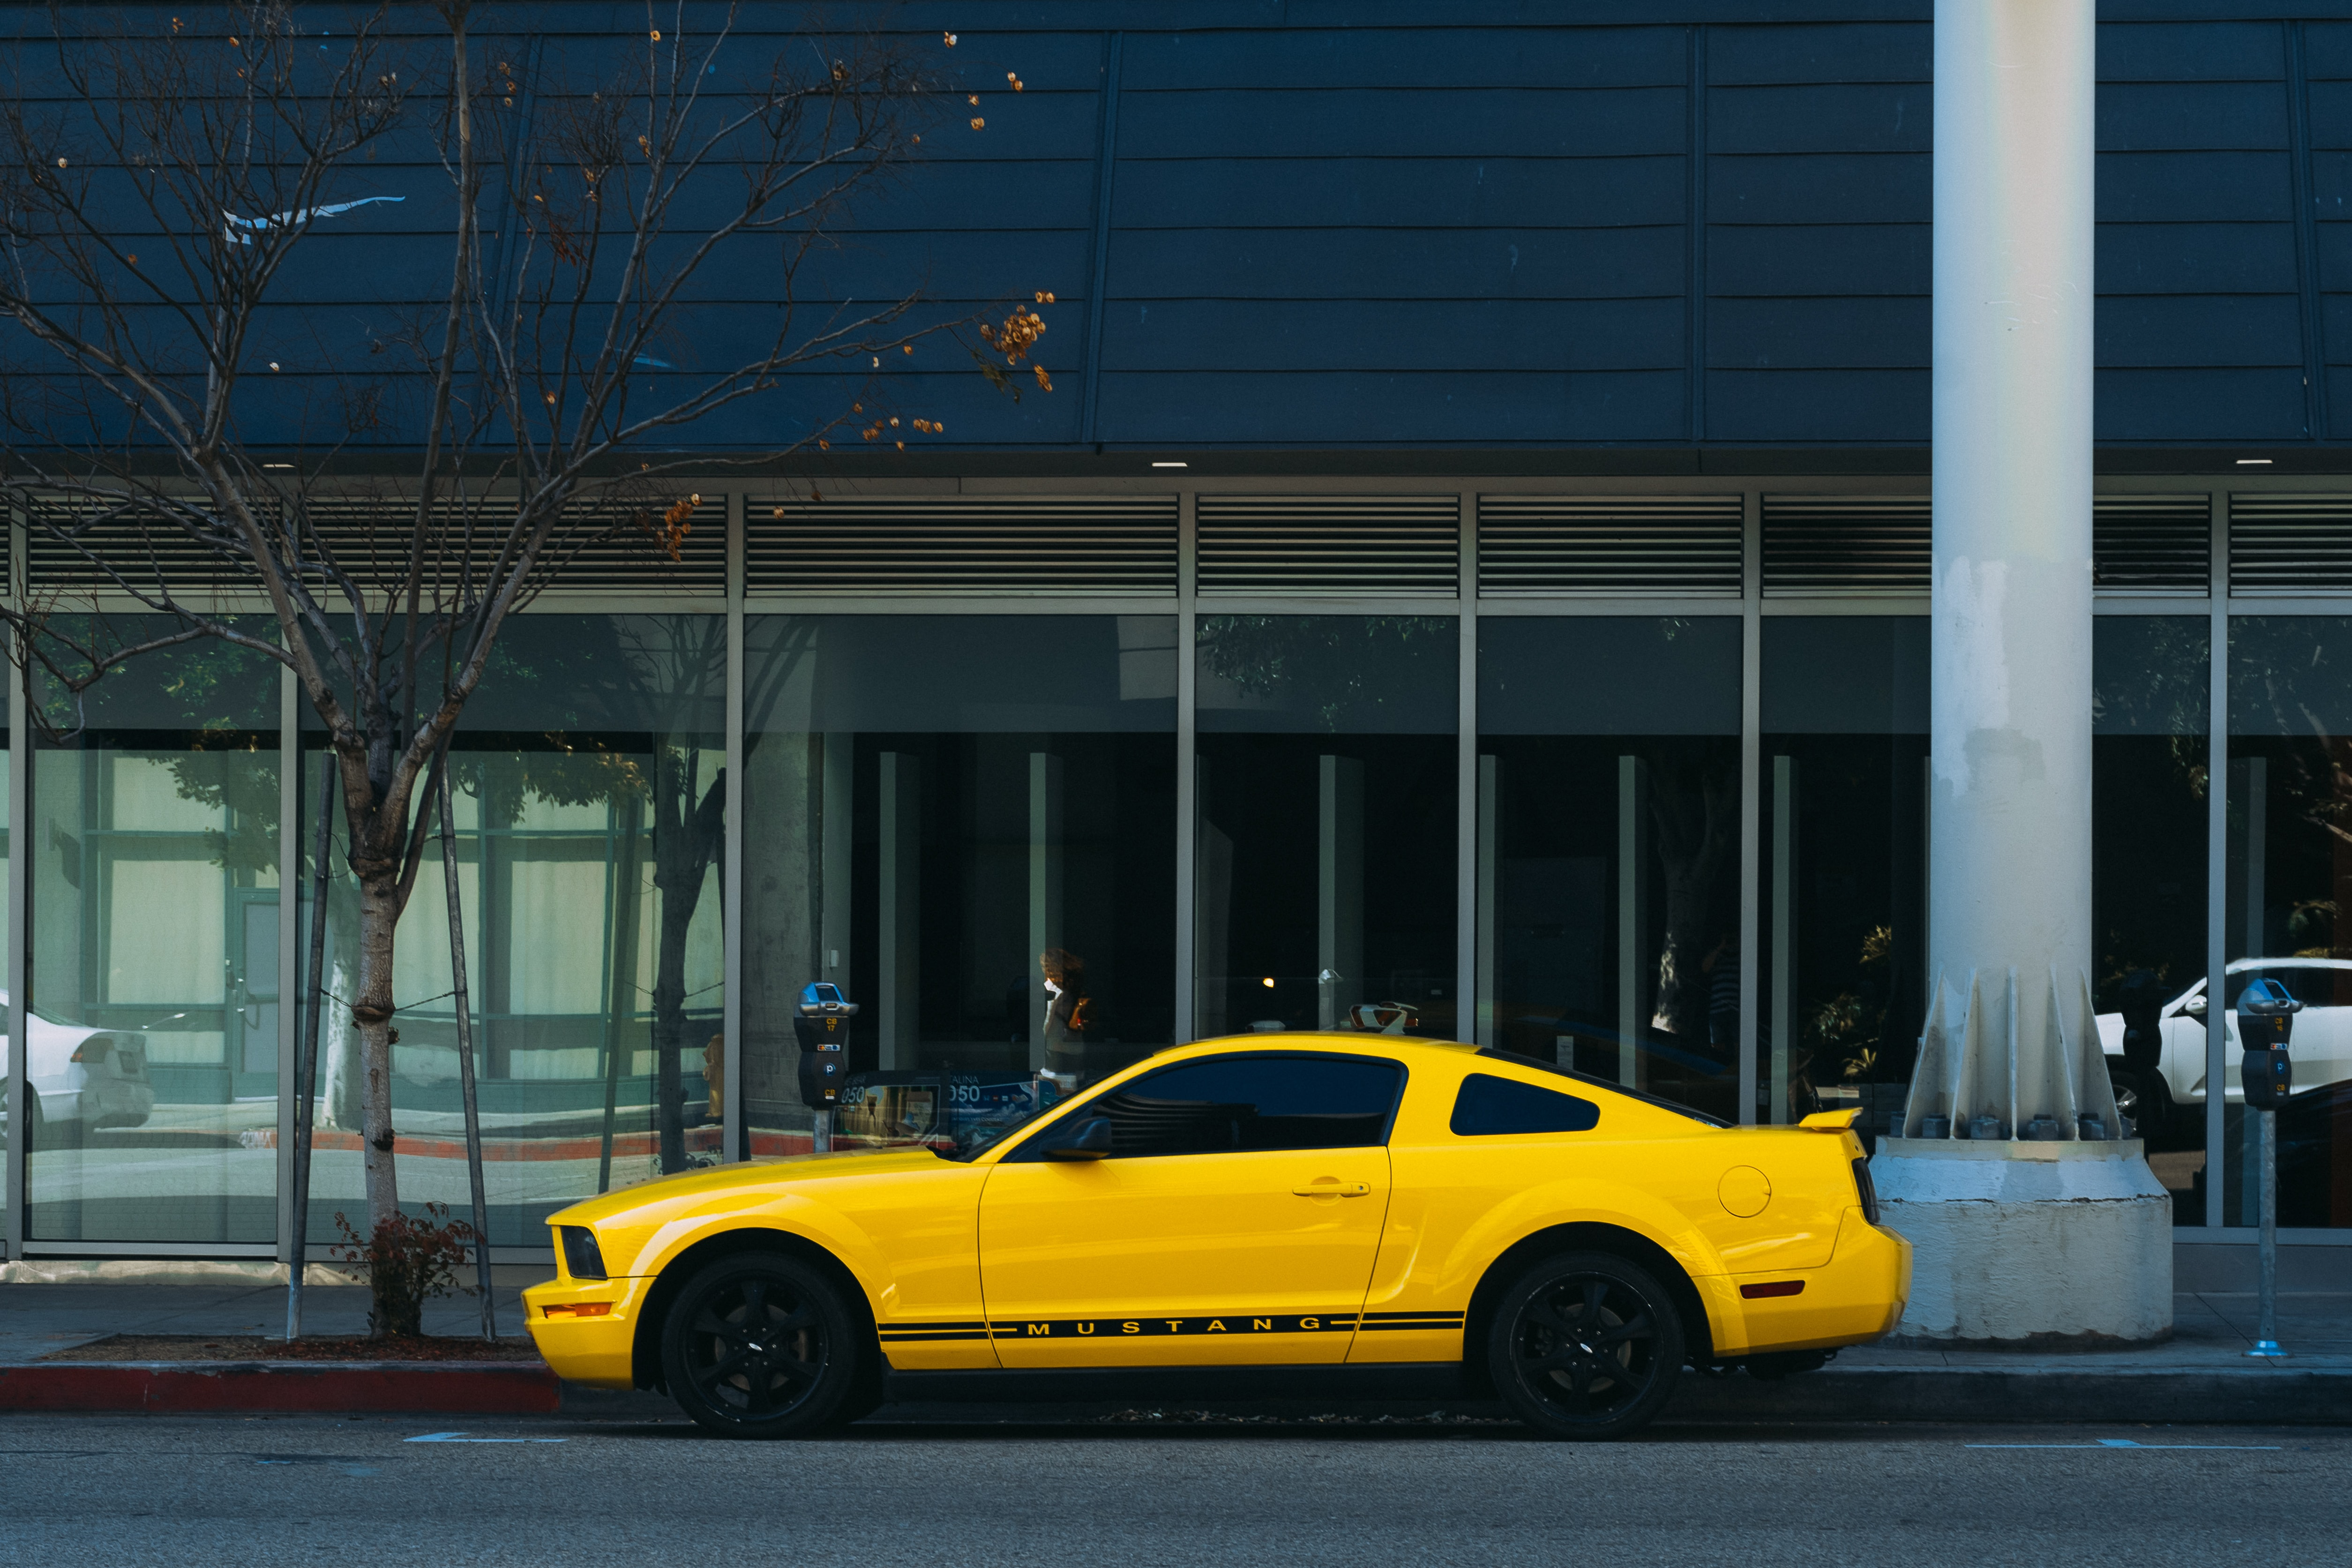 yellow coupe parked outside building